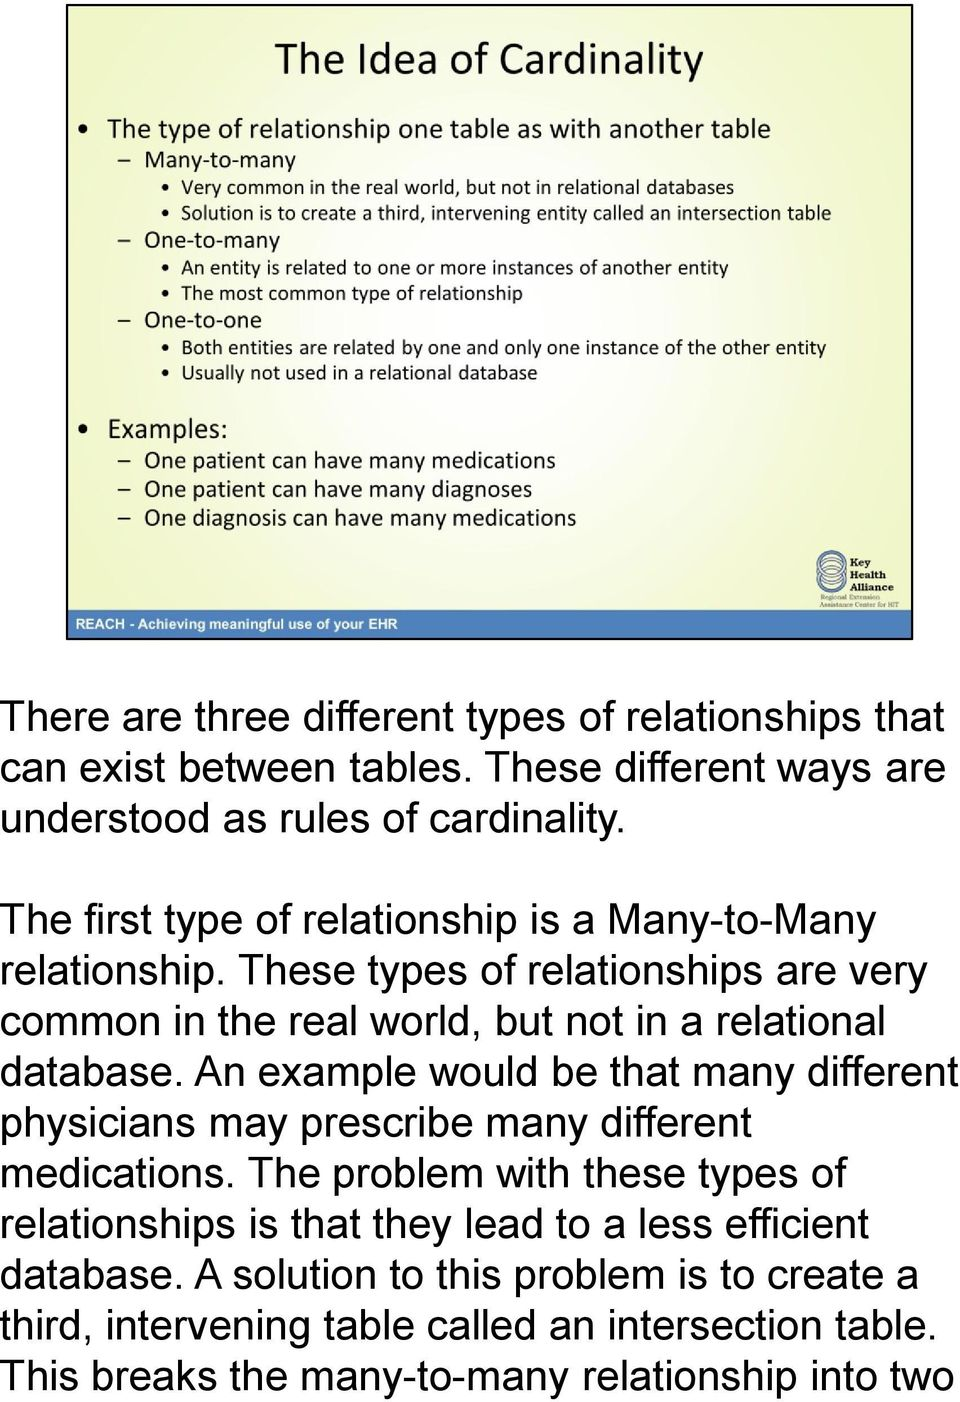 These types of relationships are very common in the real world, but not in a relational database.